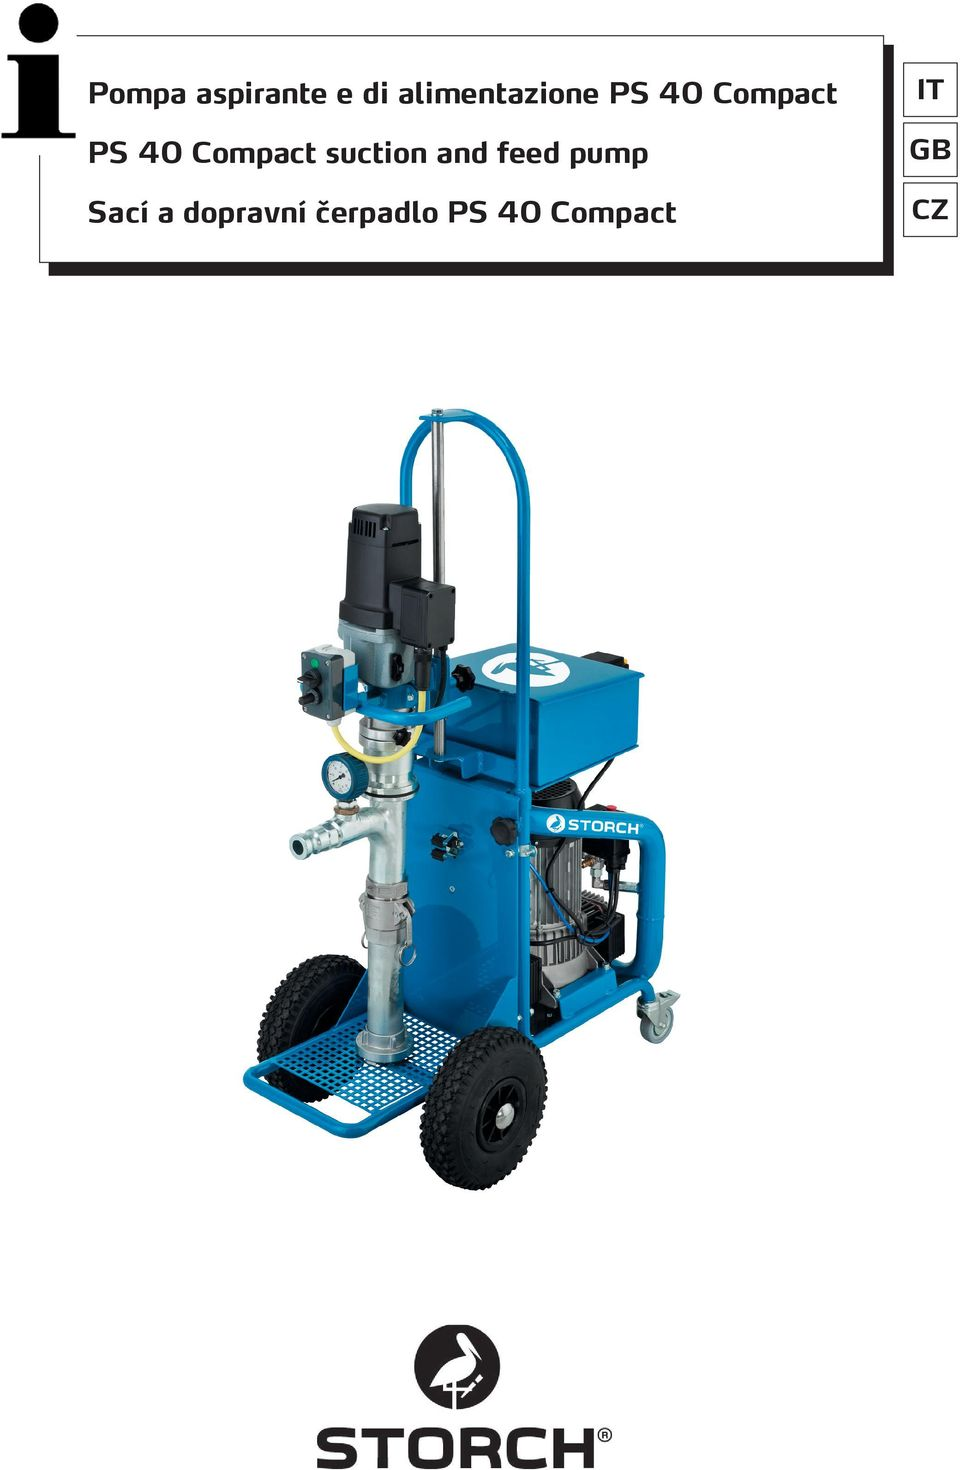 Compact suction and feed pump